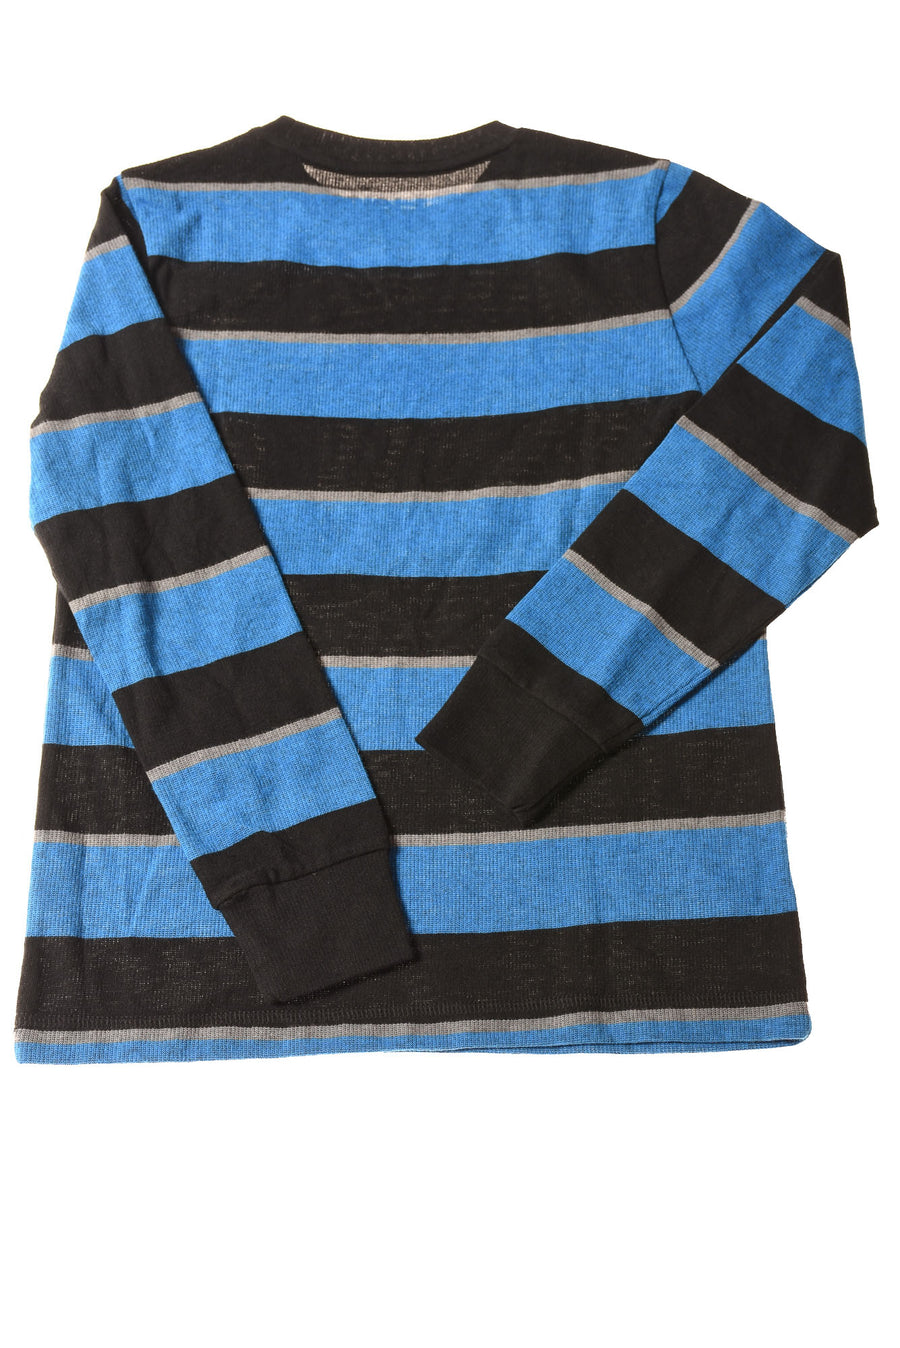 NEW Tony Hawk Boy's Sweater Medium Blue & Black / Striped